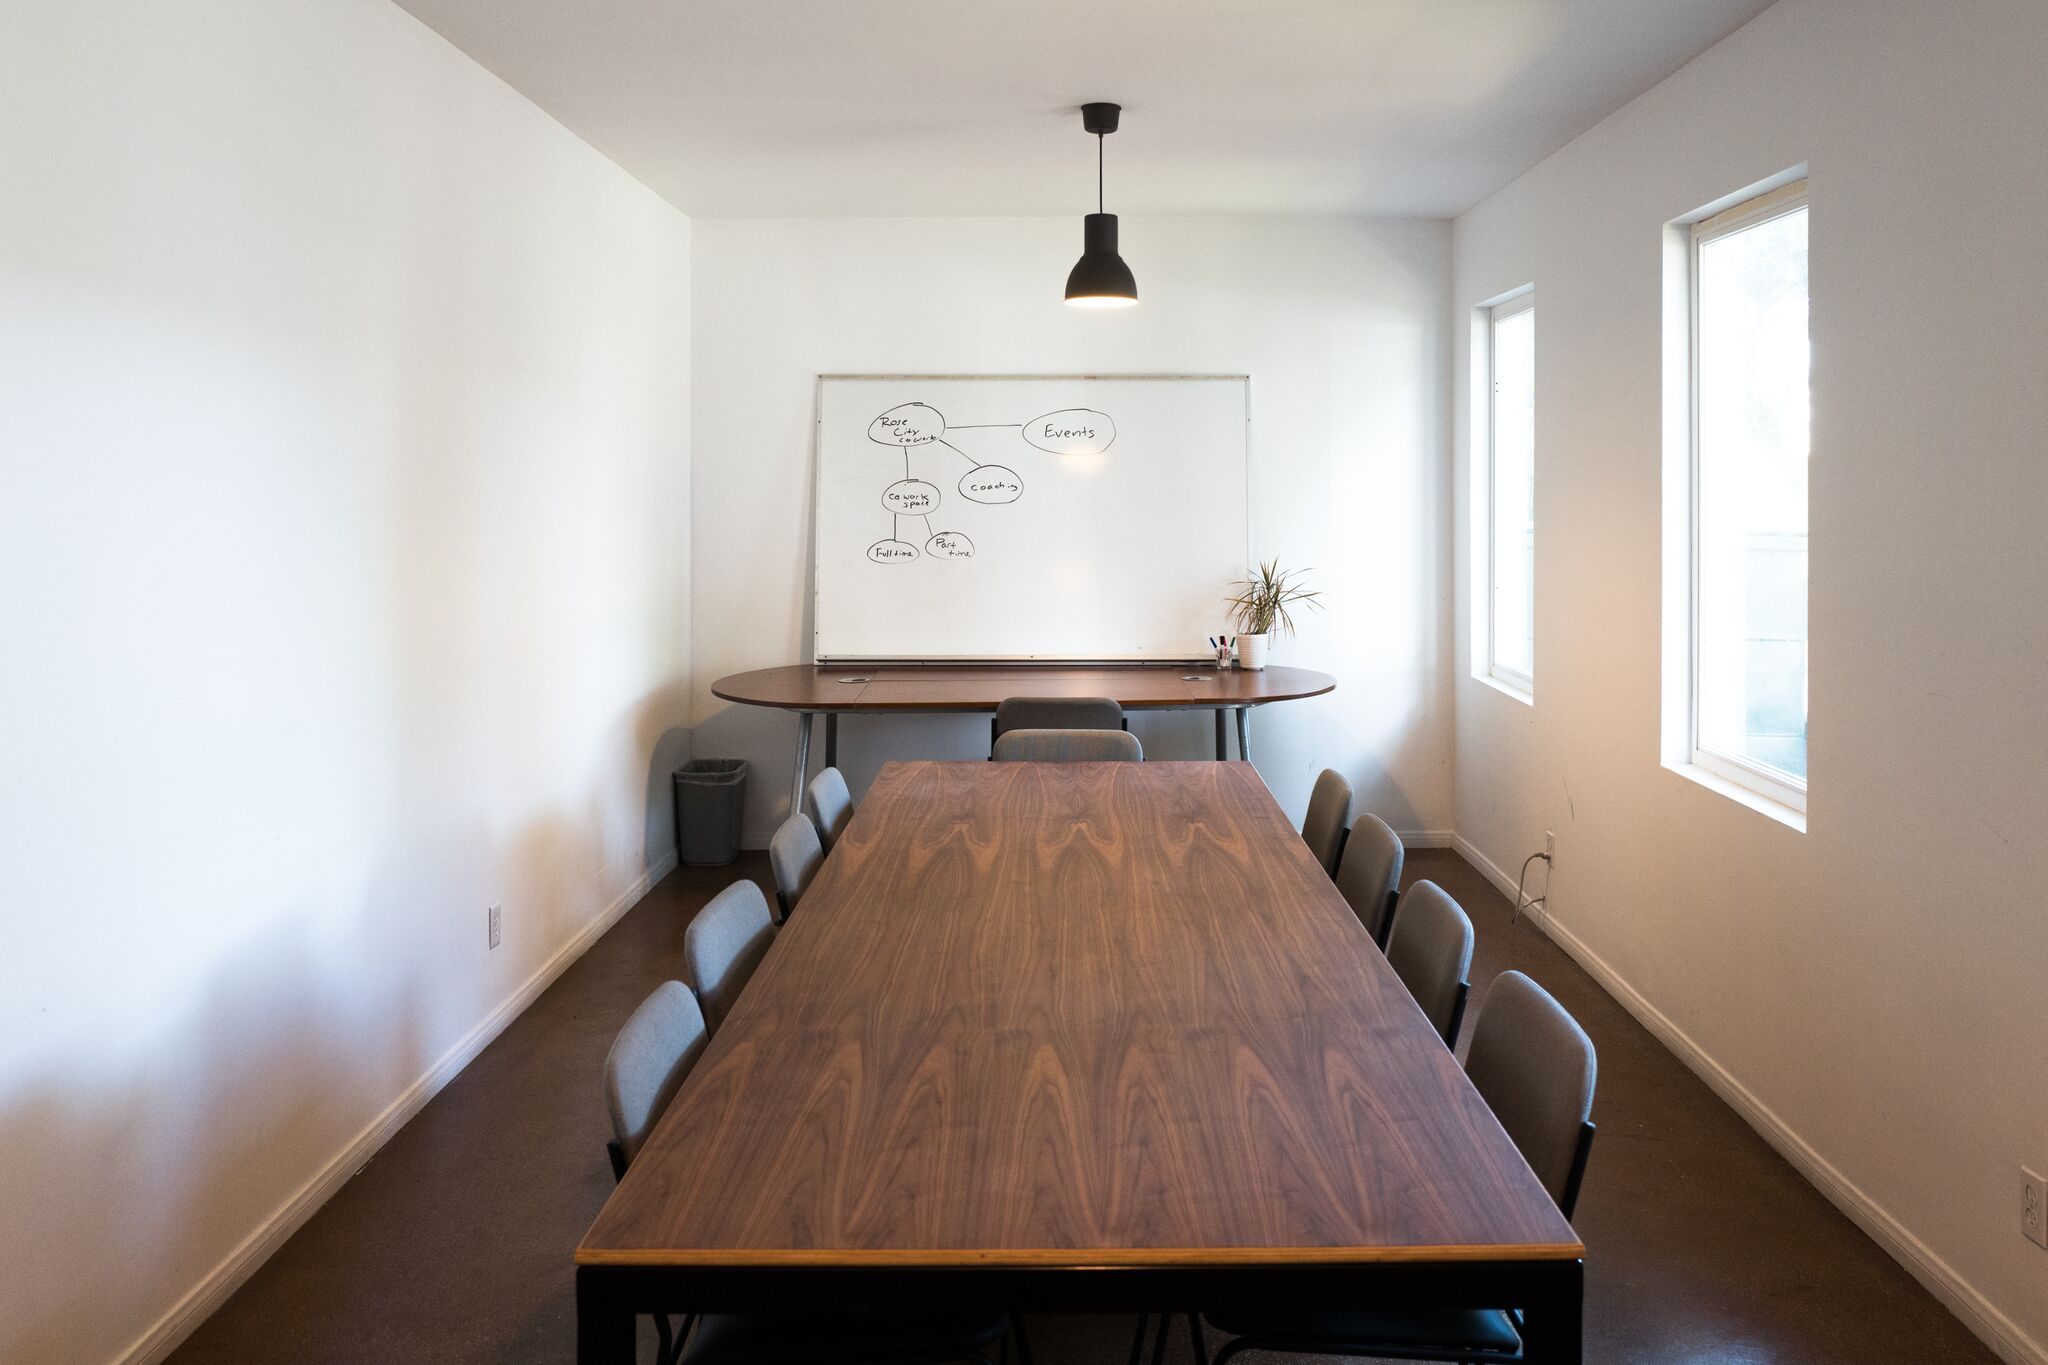 Downstairs conference room 1.jpg